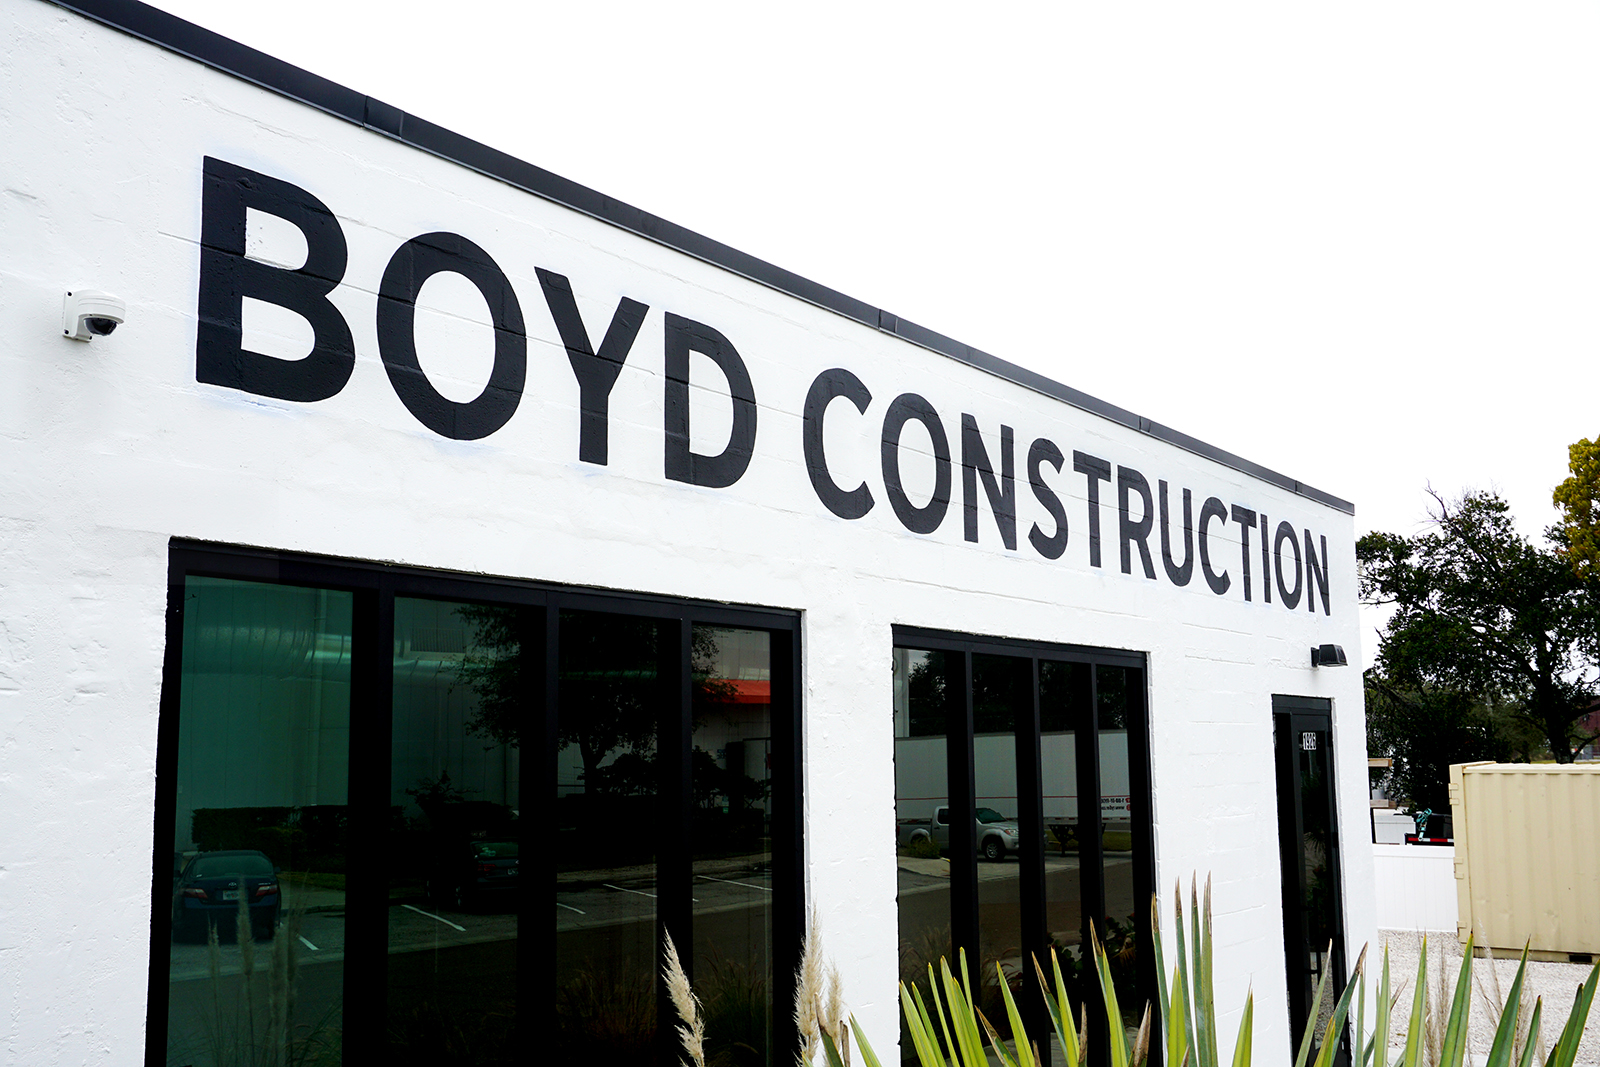 Boyd-Construction-Leo-Gomez-Studio-Hand-Painted-Sign-04.JPG